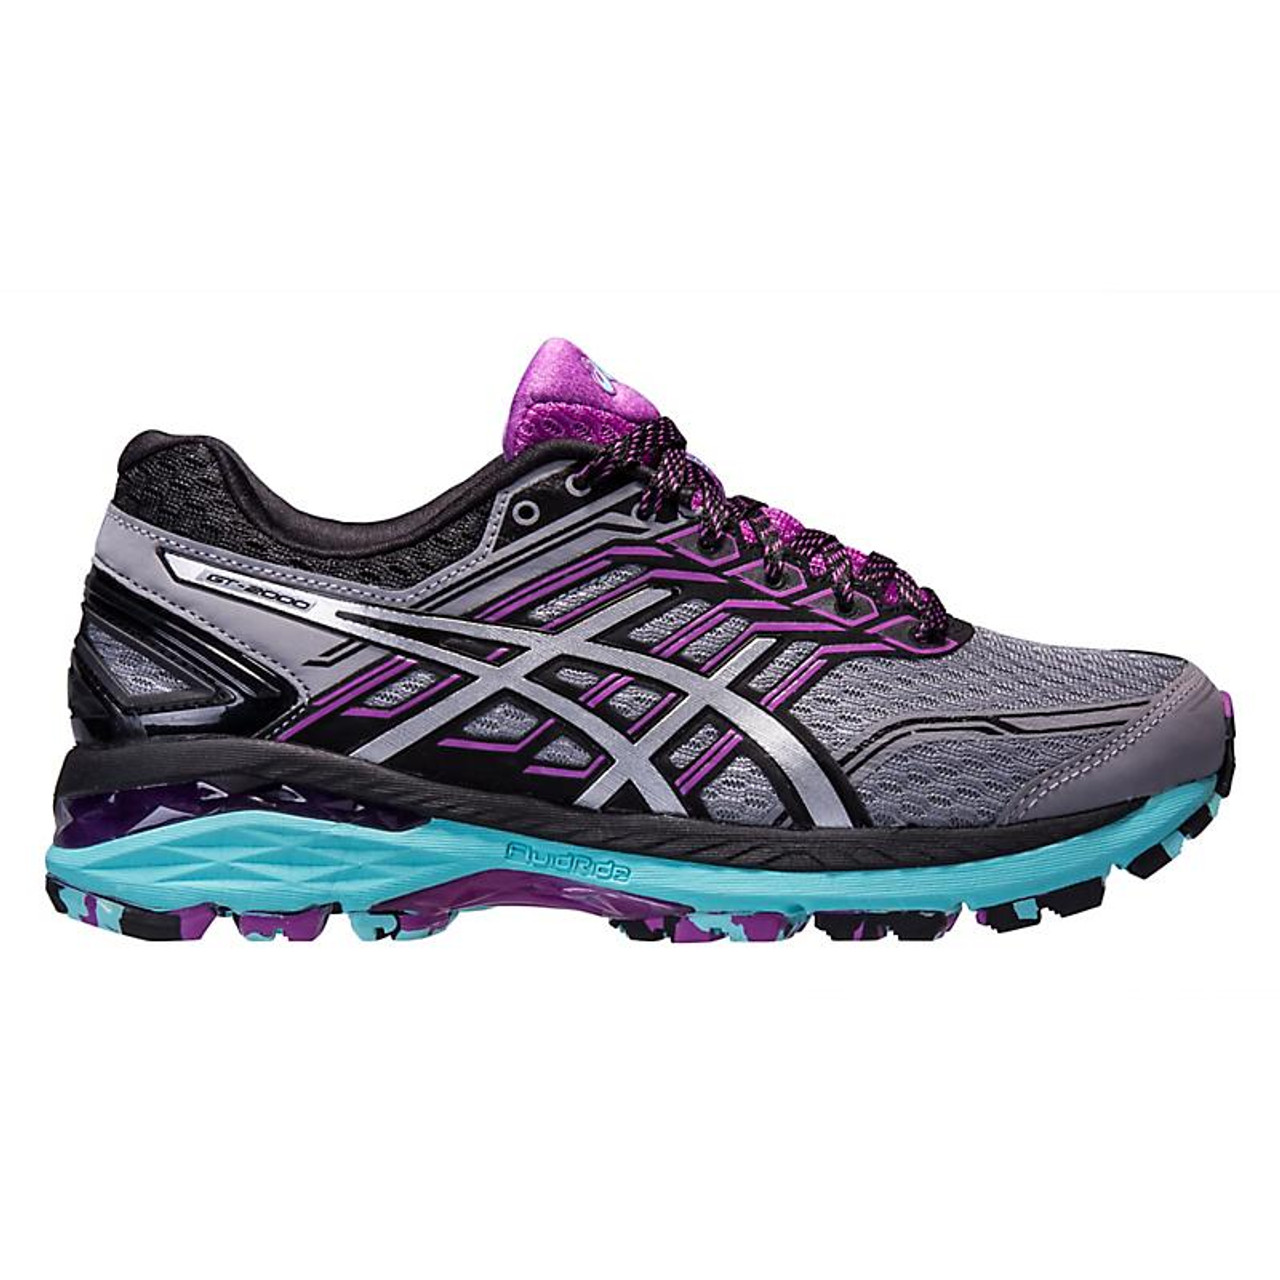 Select SZ//Color. ASICS Womens GT-2000 5 Running Shoe